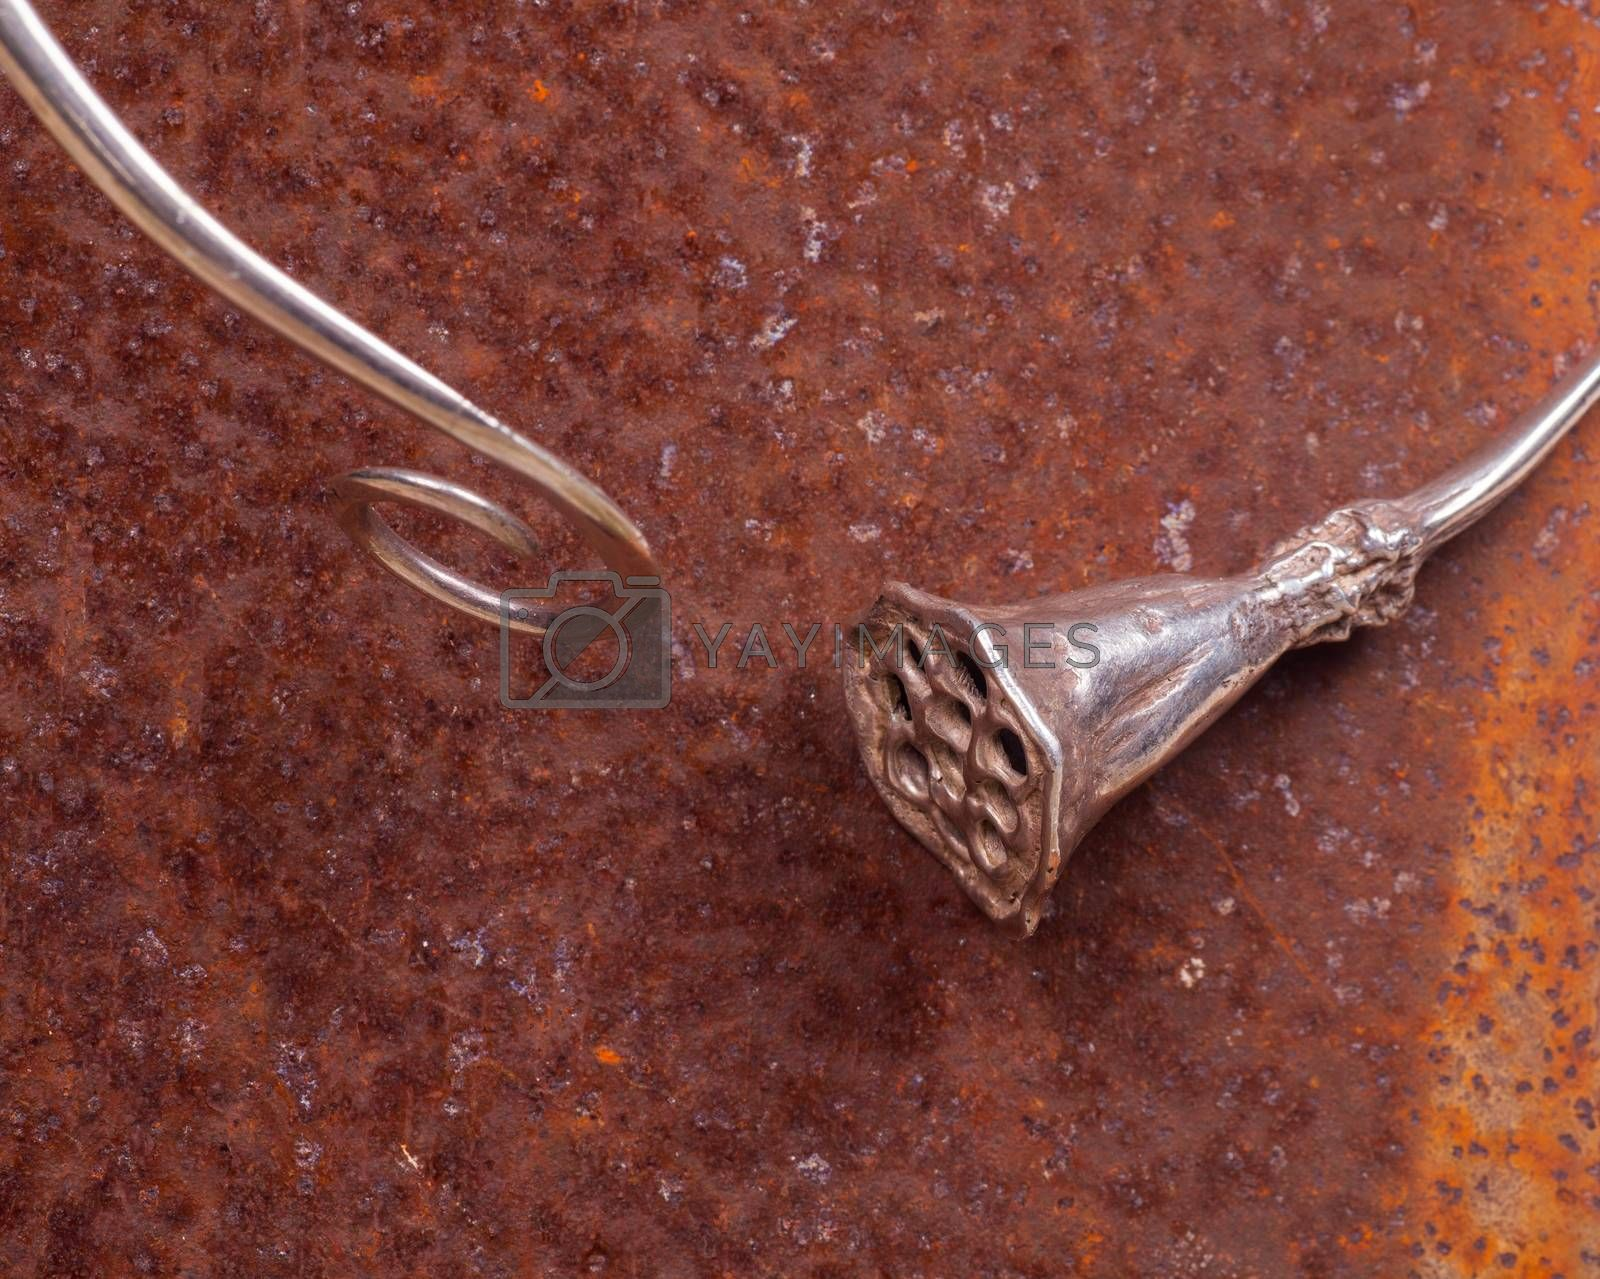 Close up of silver necklace on rusty iron, manufactured by Ornella Salamone